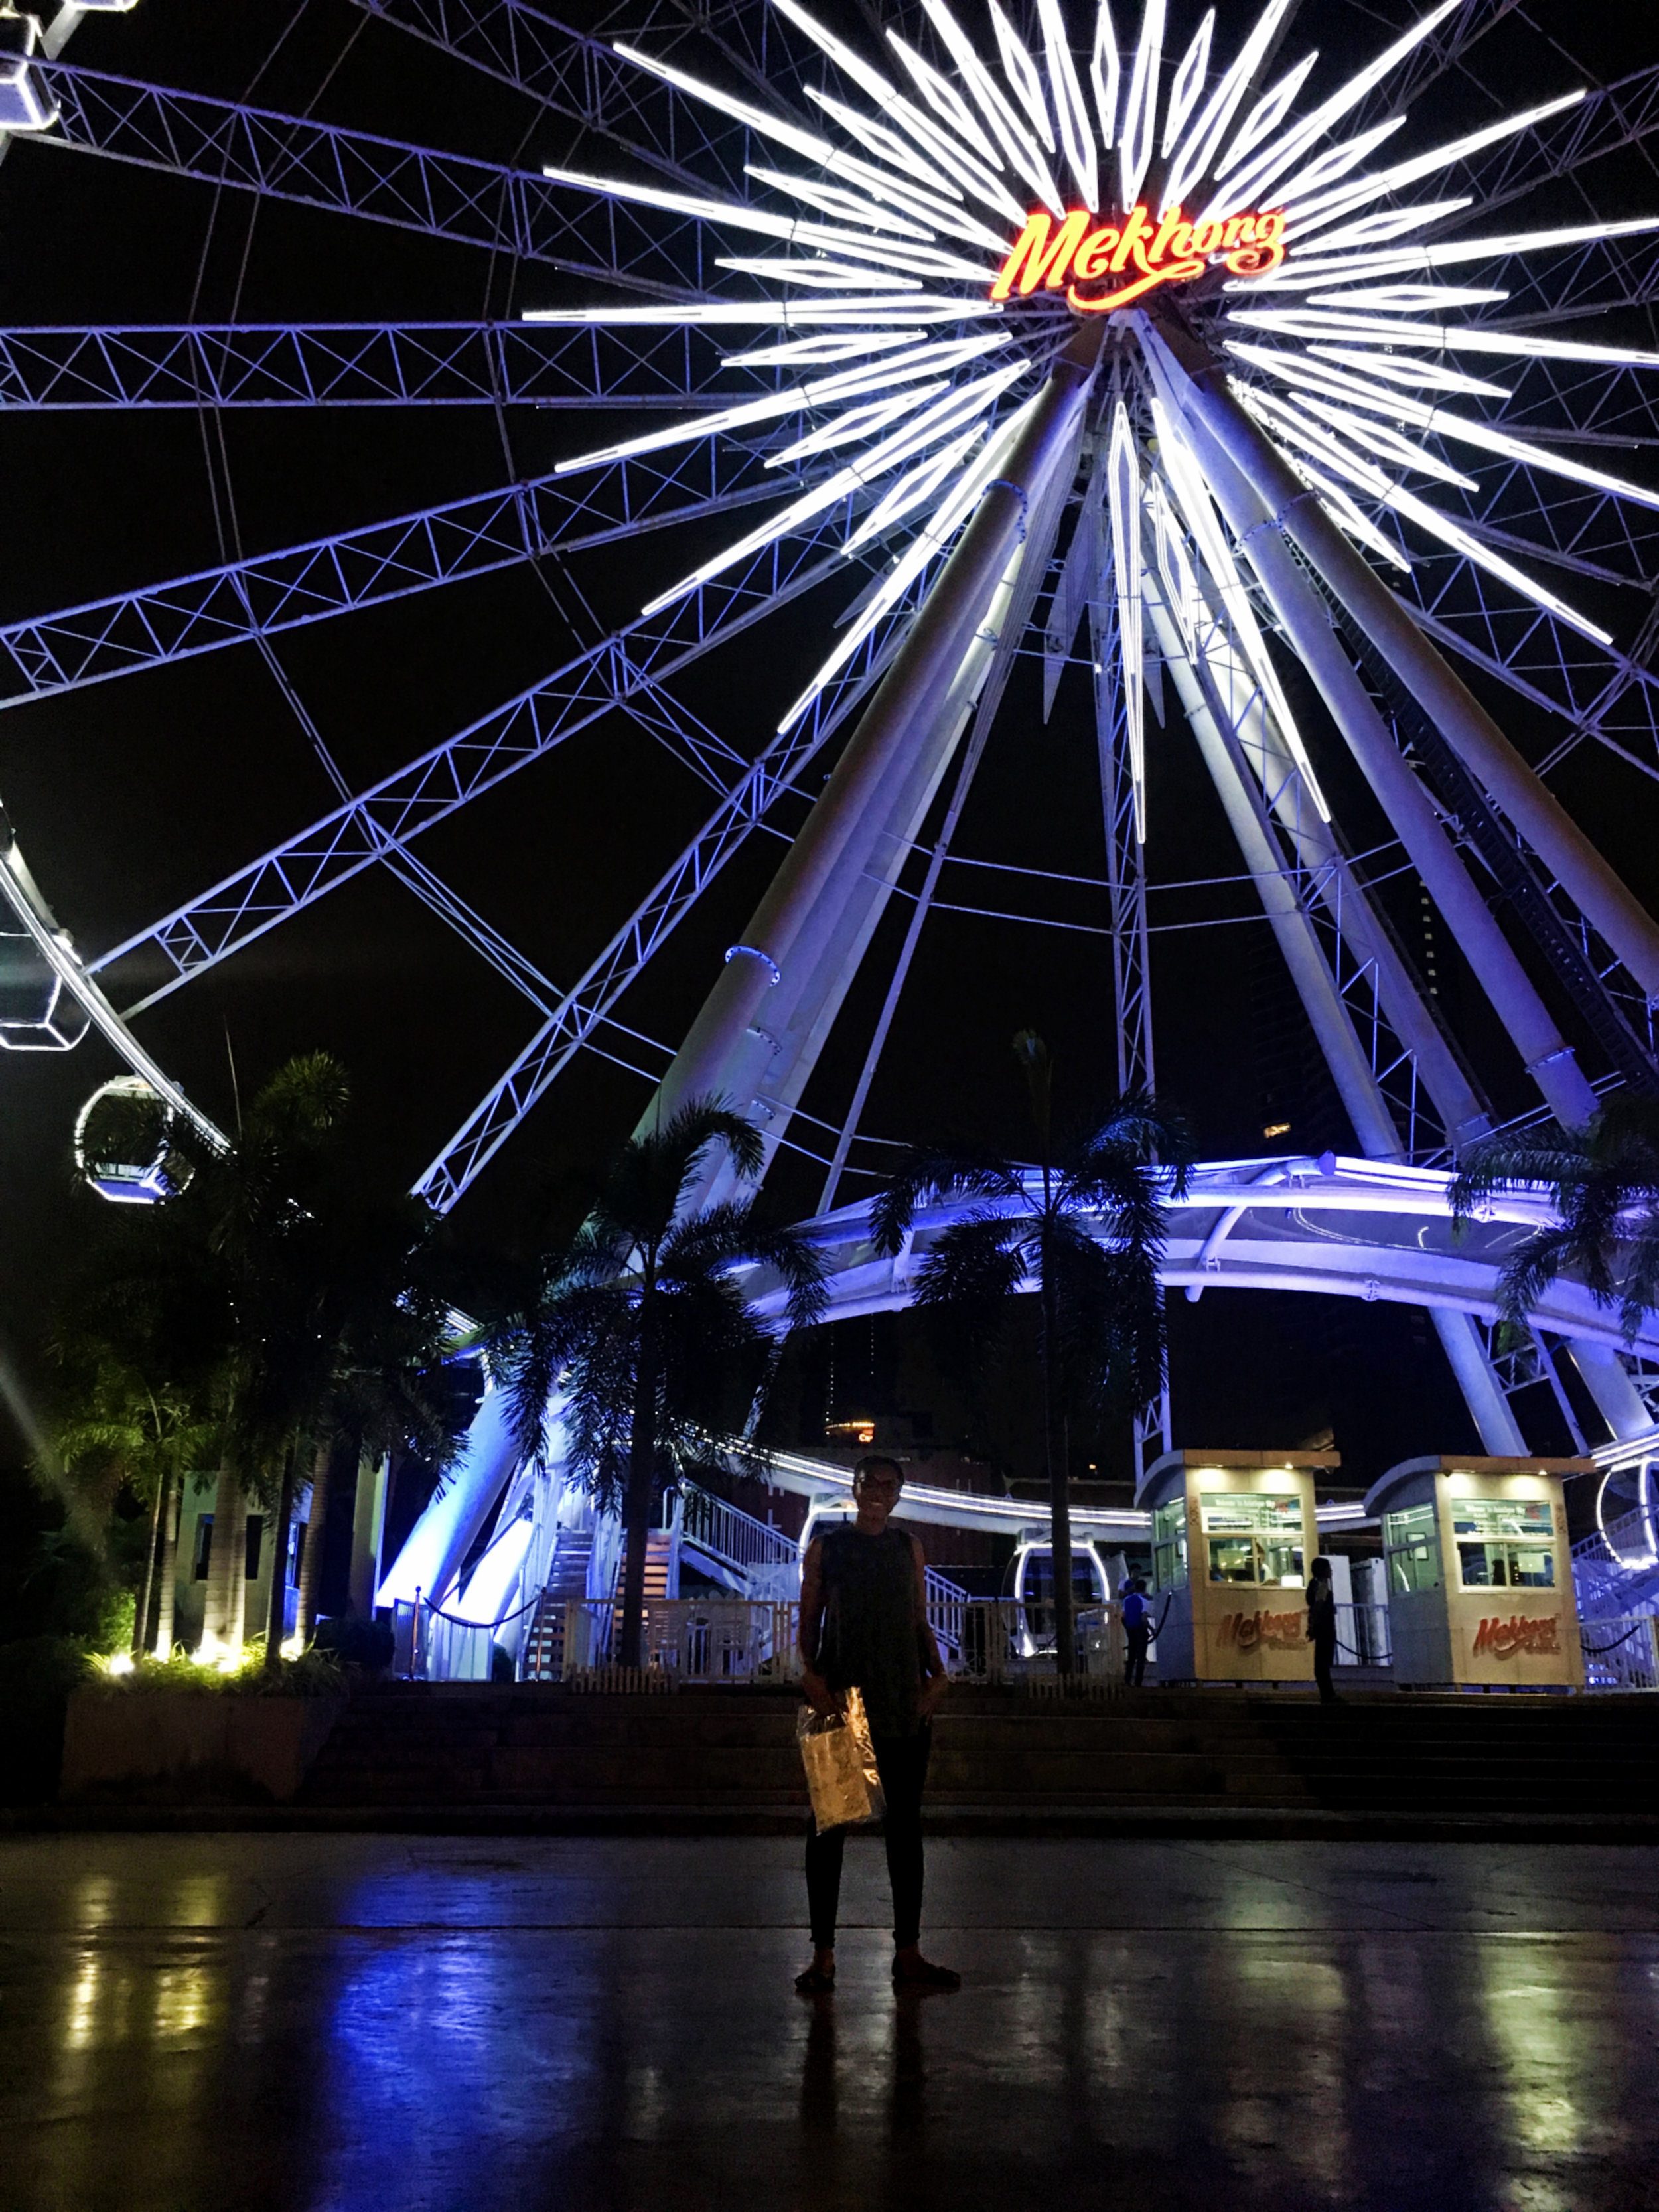 View of the ferris wheel at Asiatique